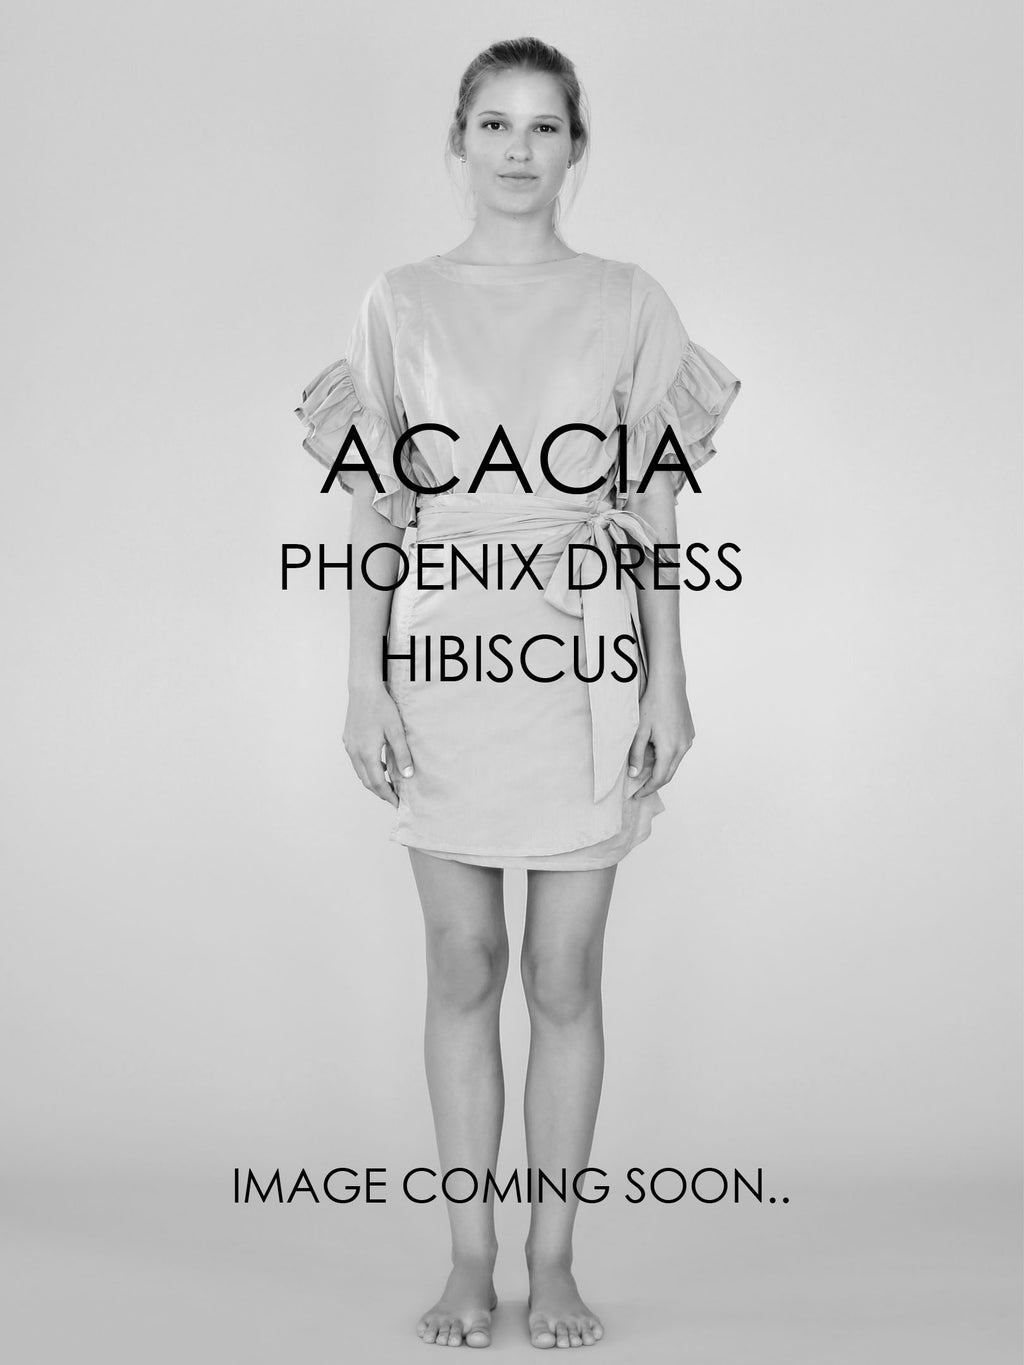 ACACIA Phoenix Dress | Hibiscus